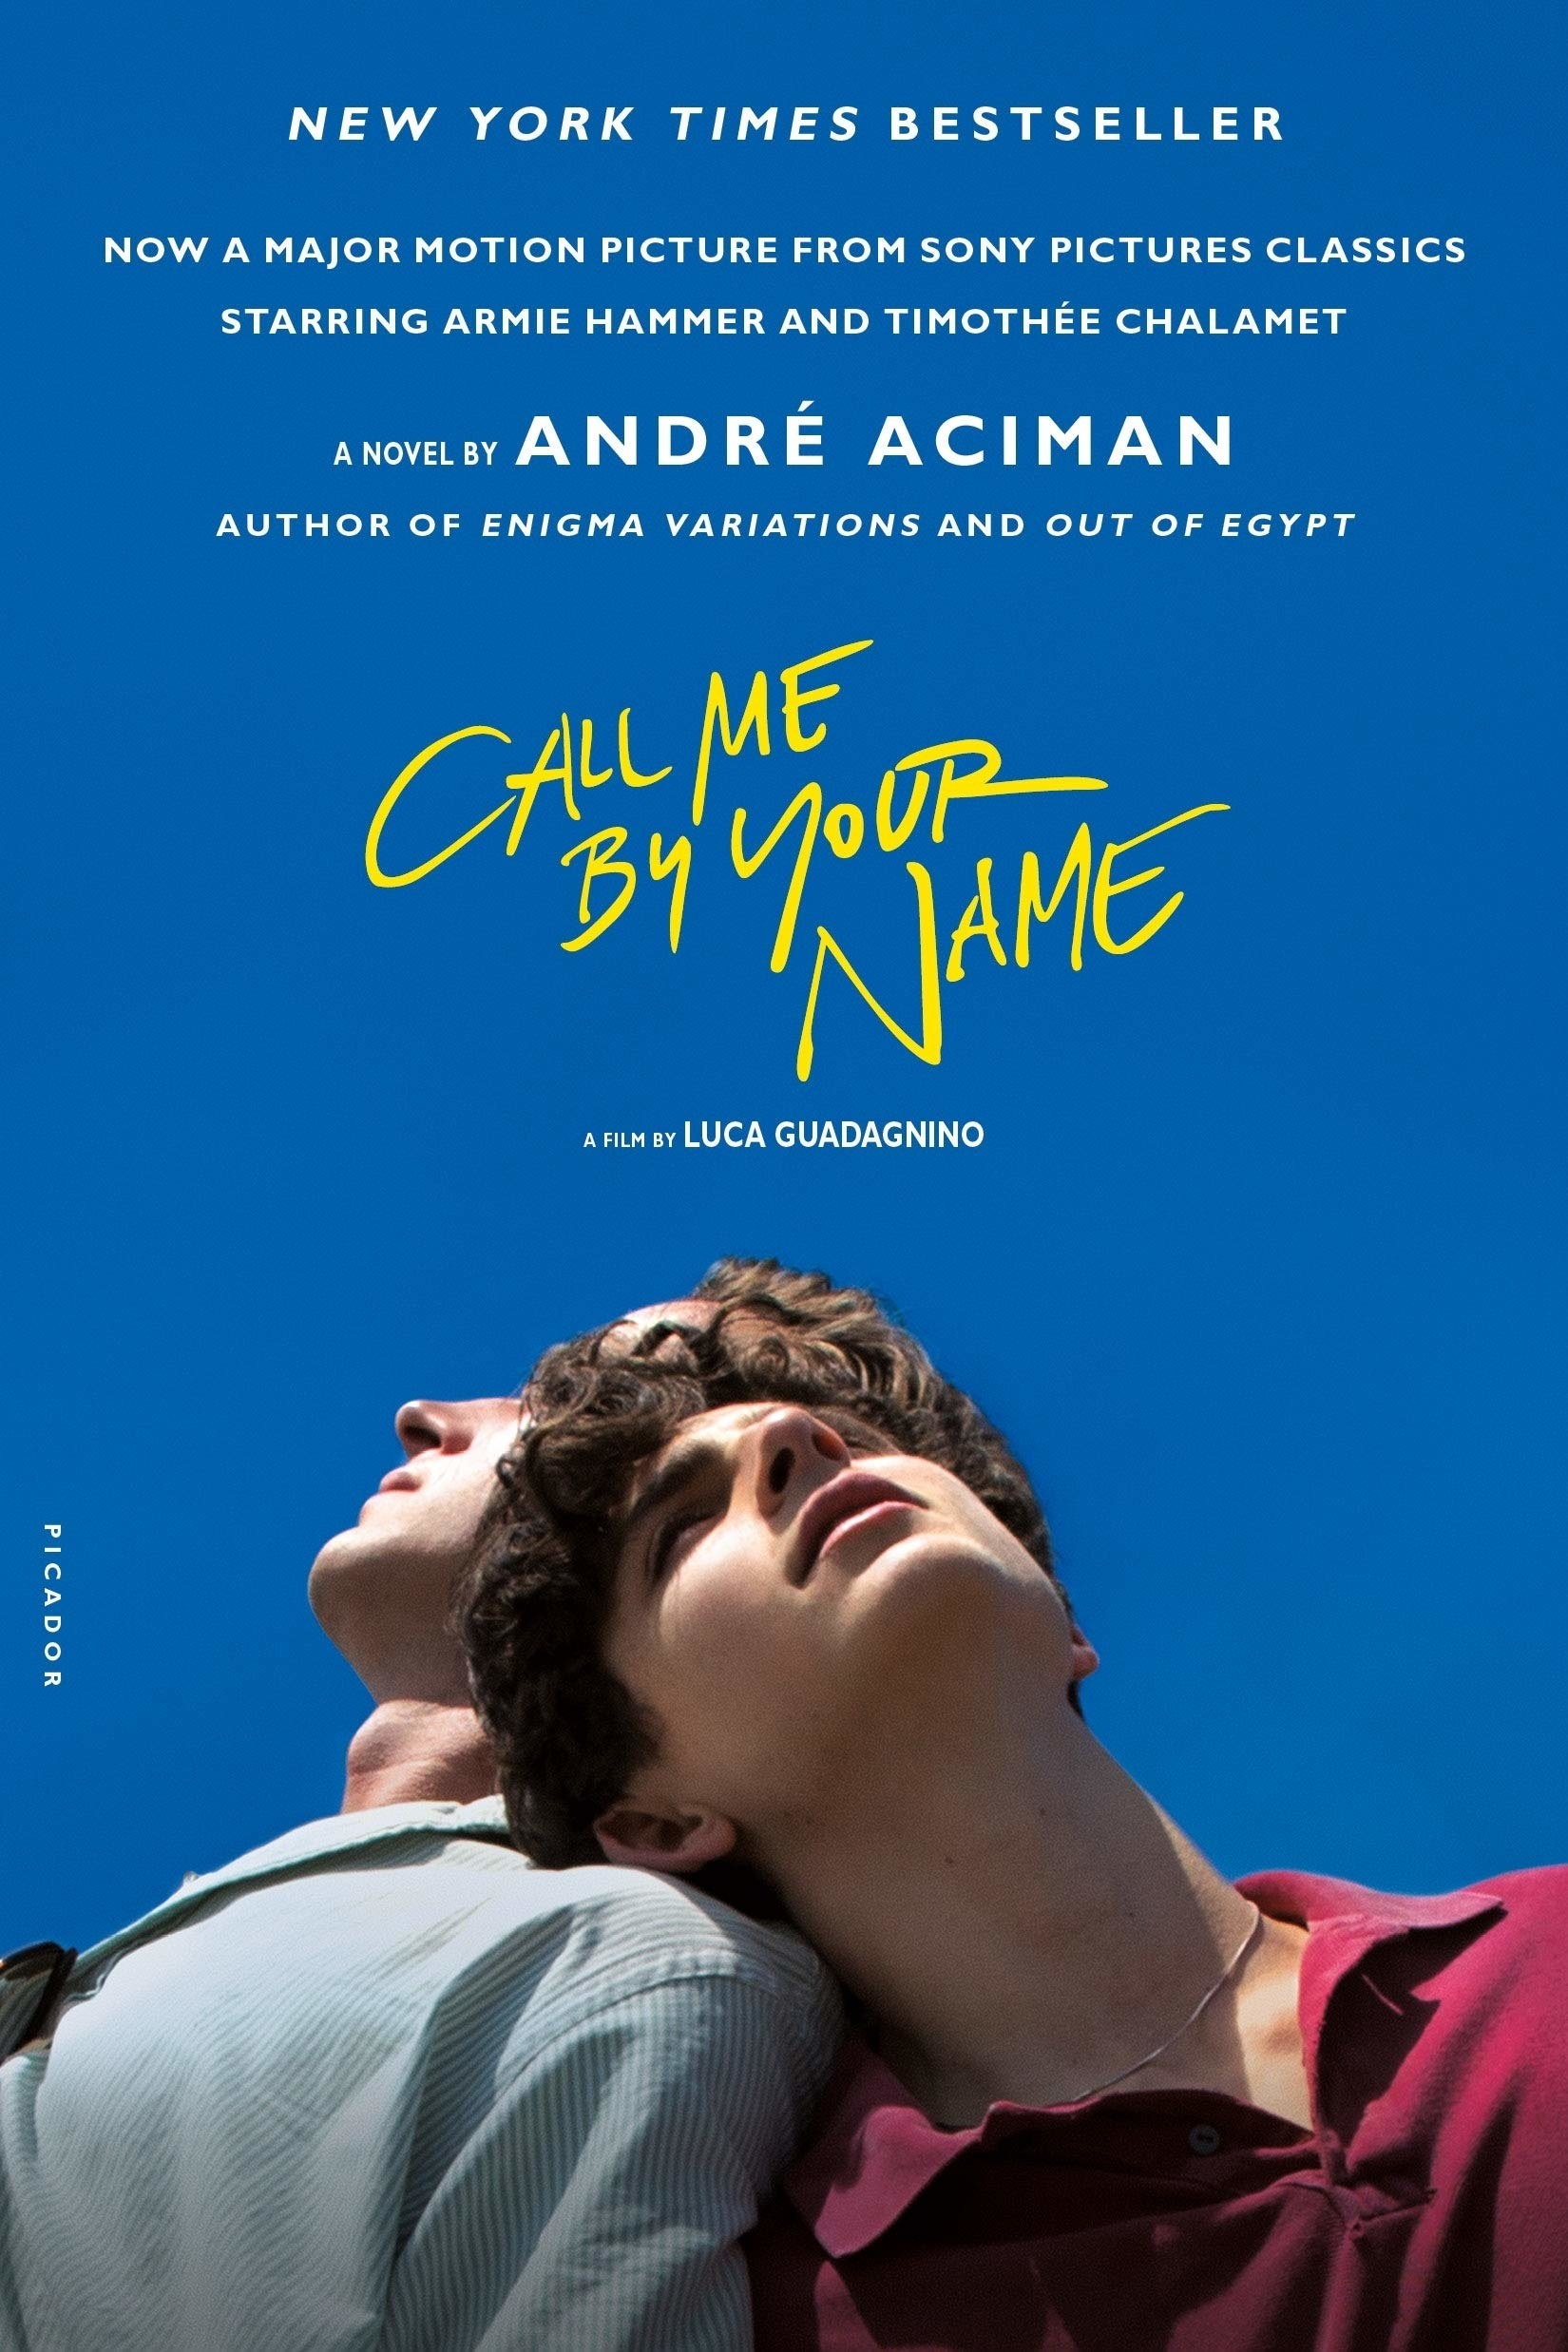 the cover of call me by your name by andre aciman